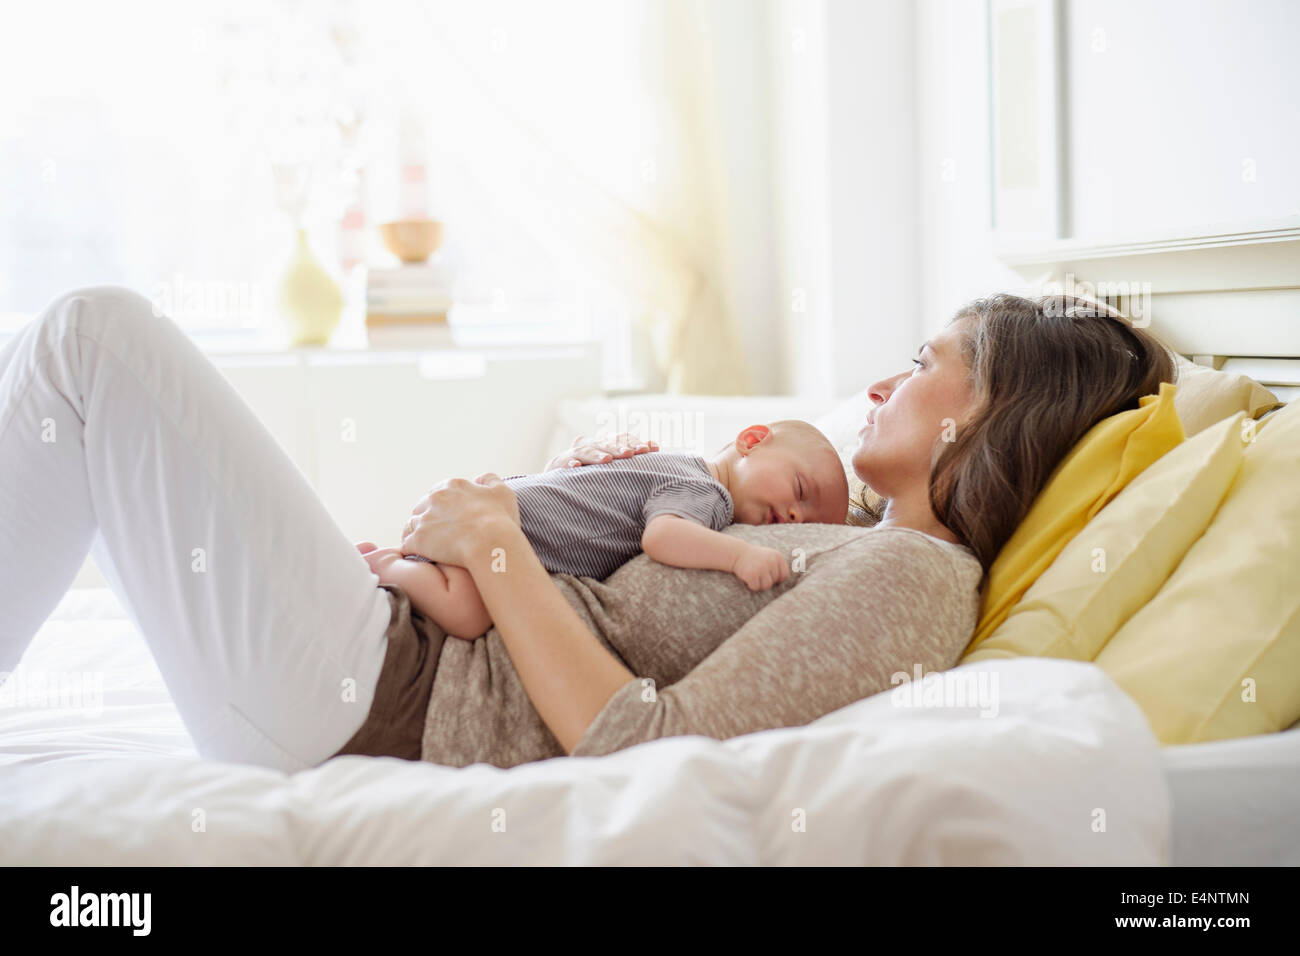 Mother lying in bed with baby boy (2-5 months) - Stock Image